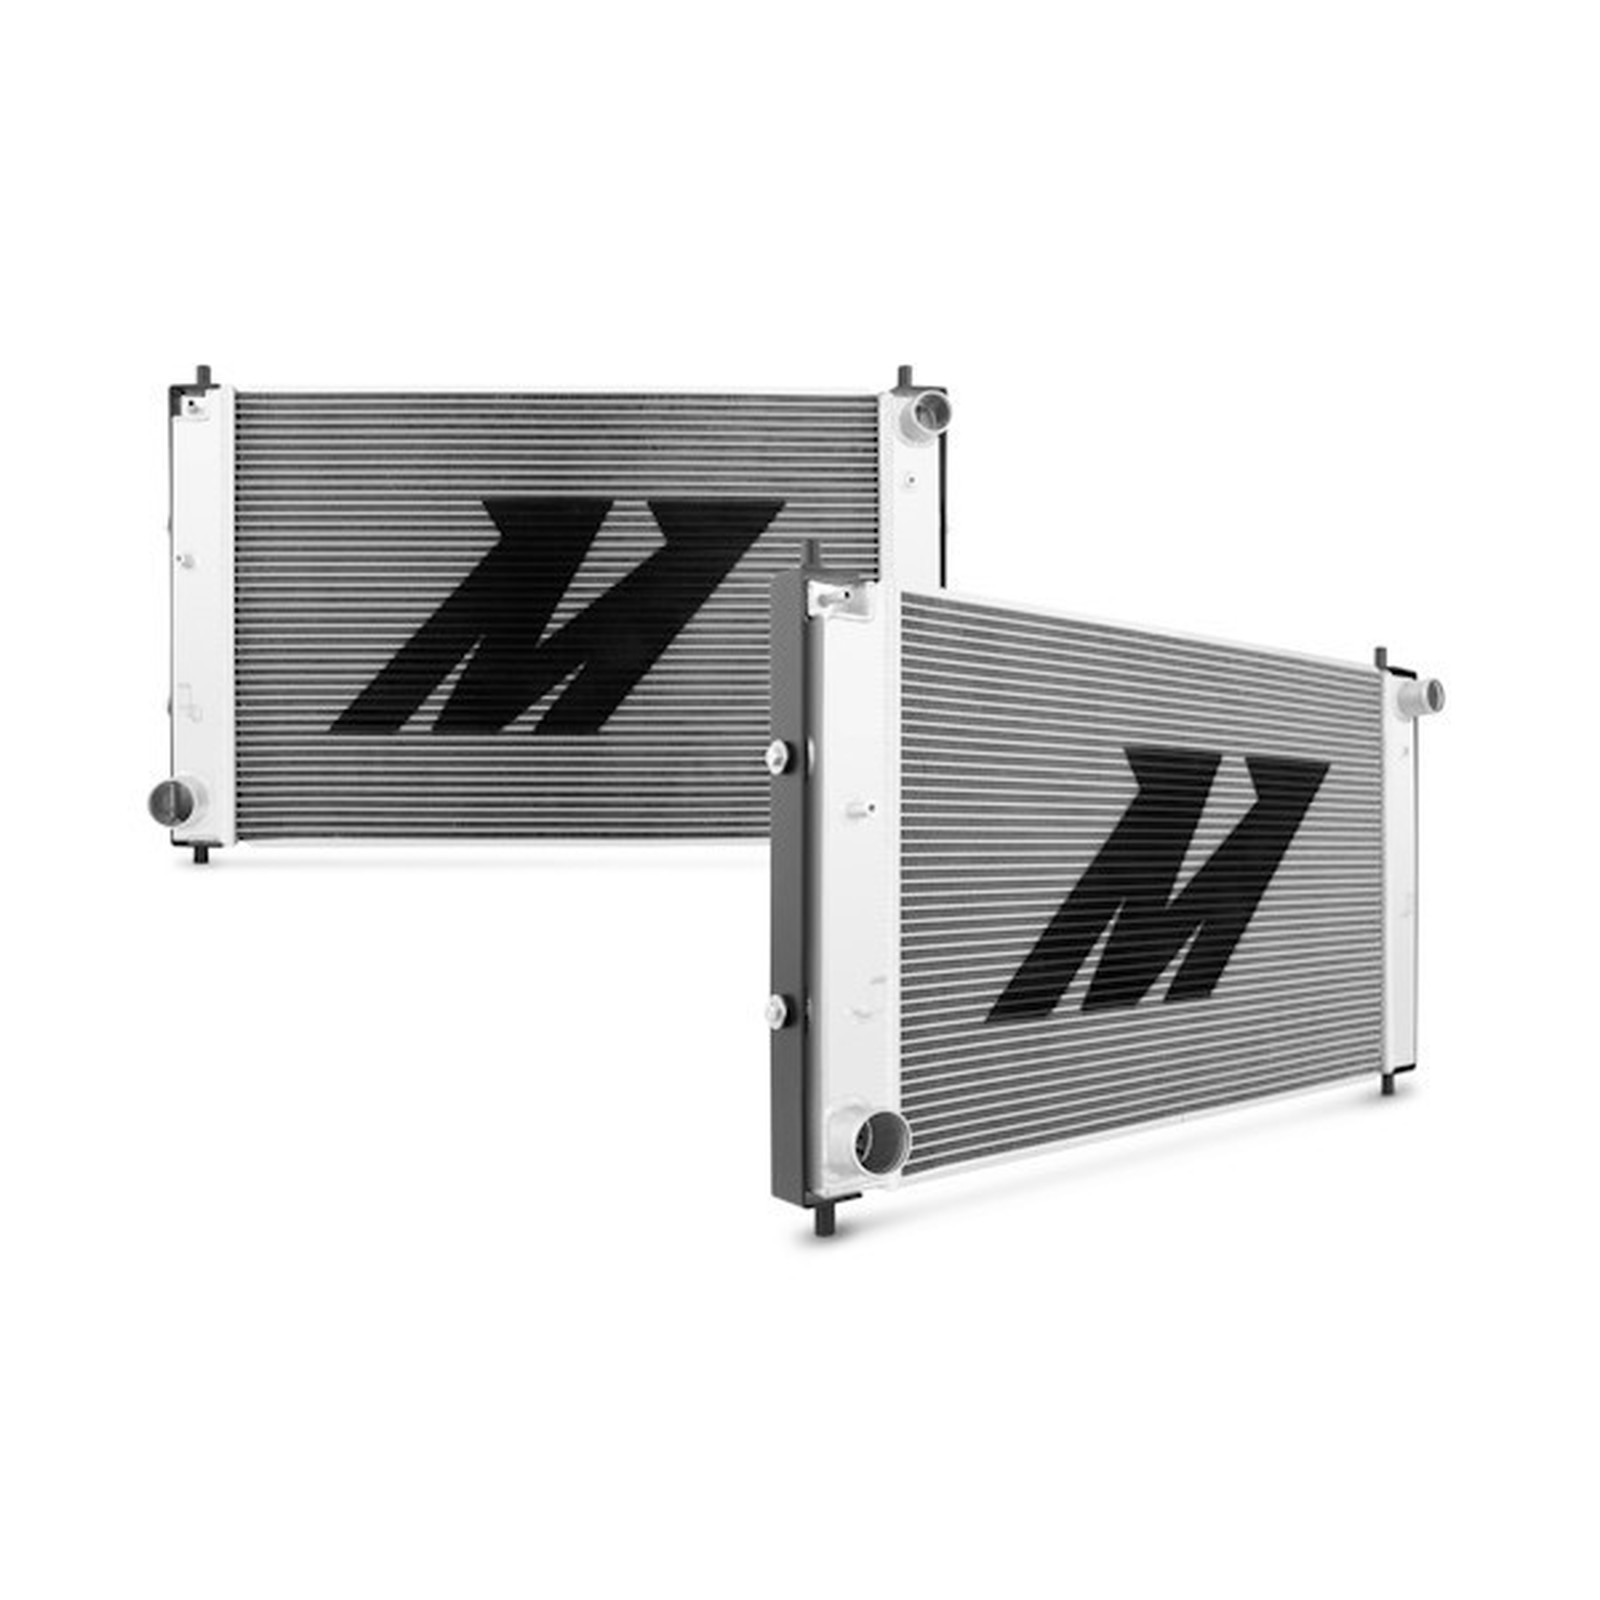 Ford Mustang GT Performance Aluminum Radiator w / Stabilizer System /  Manual / 1997-2004